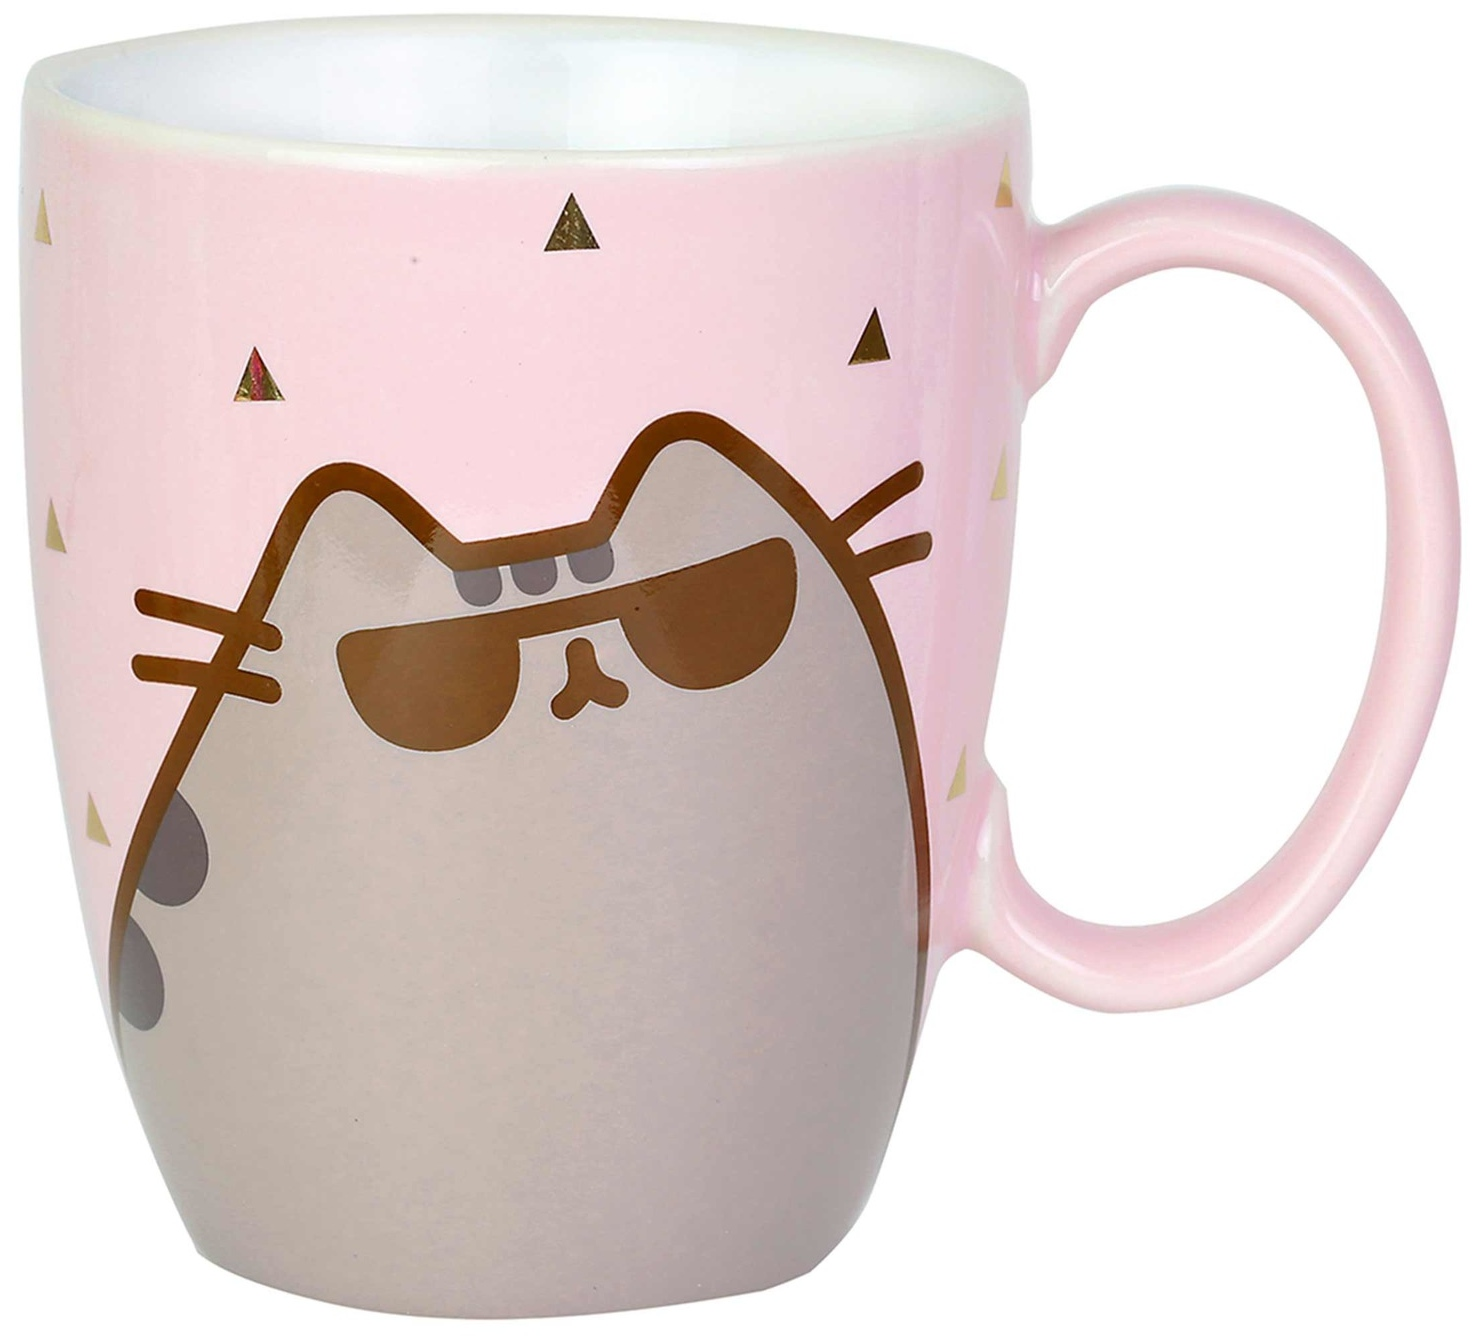 Pusheen by Our Name Is Mud 6004623 Sunglasses Mug